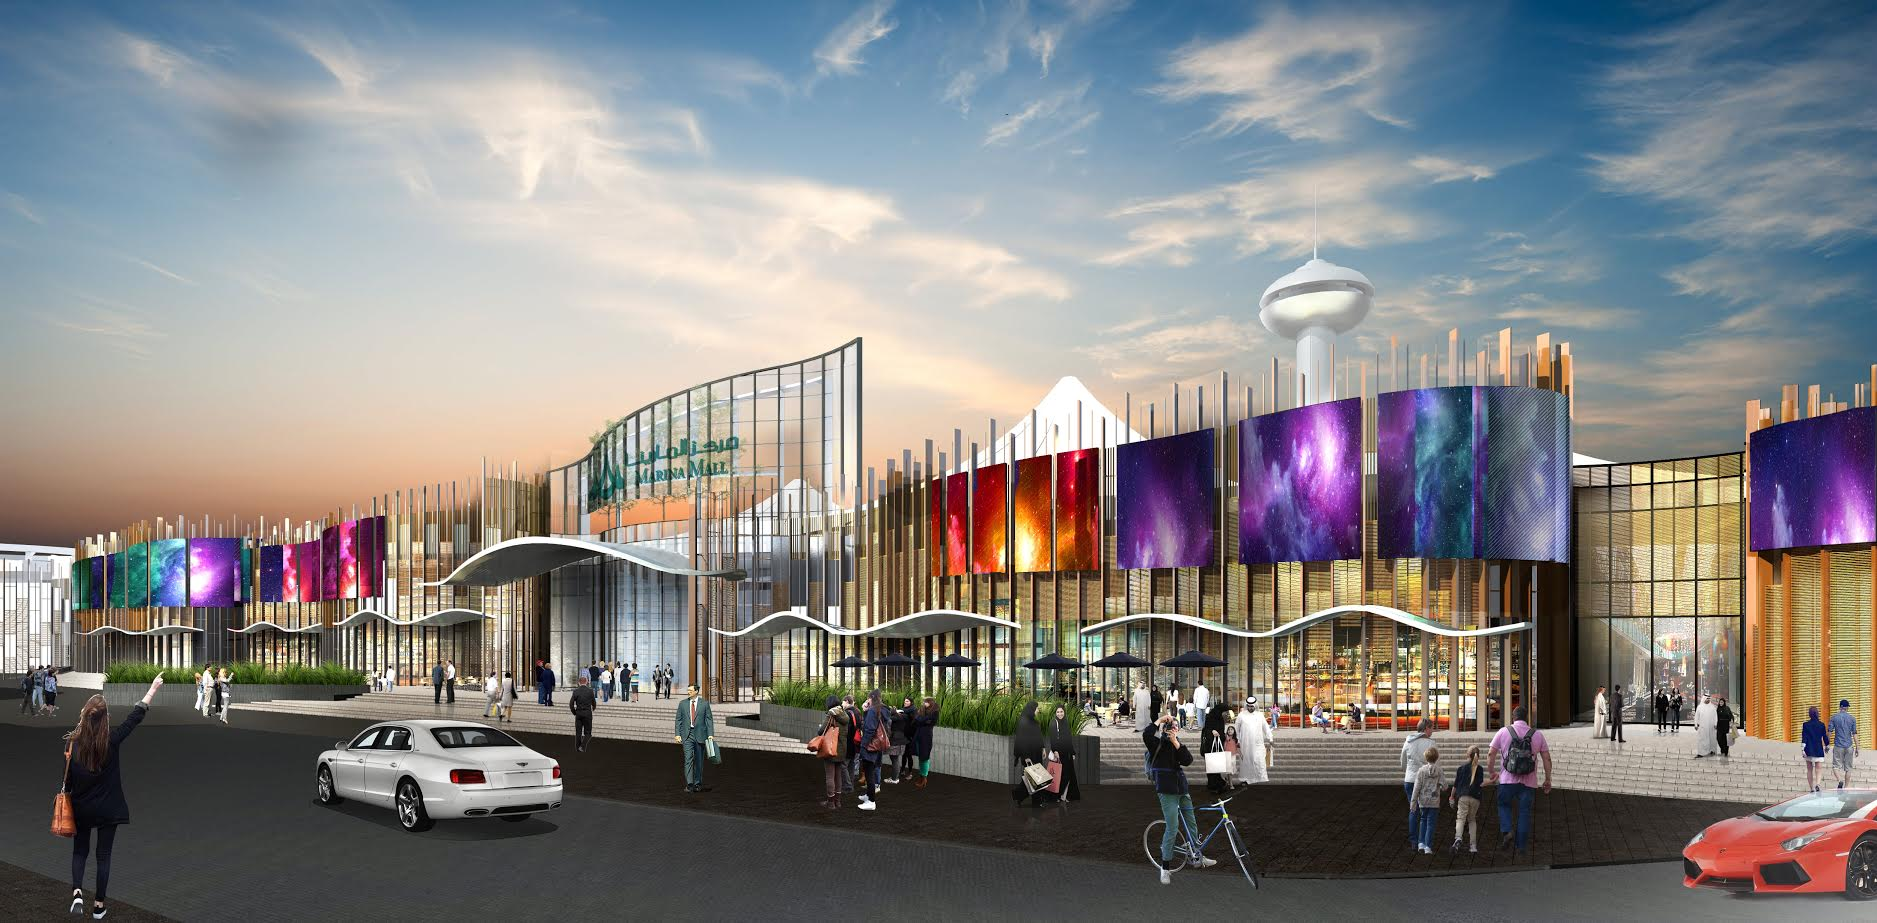 Marina Mall Abu Dhabi Announces Dh3b Expansion Plans Emirates 24 7